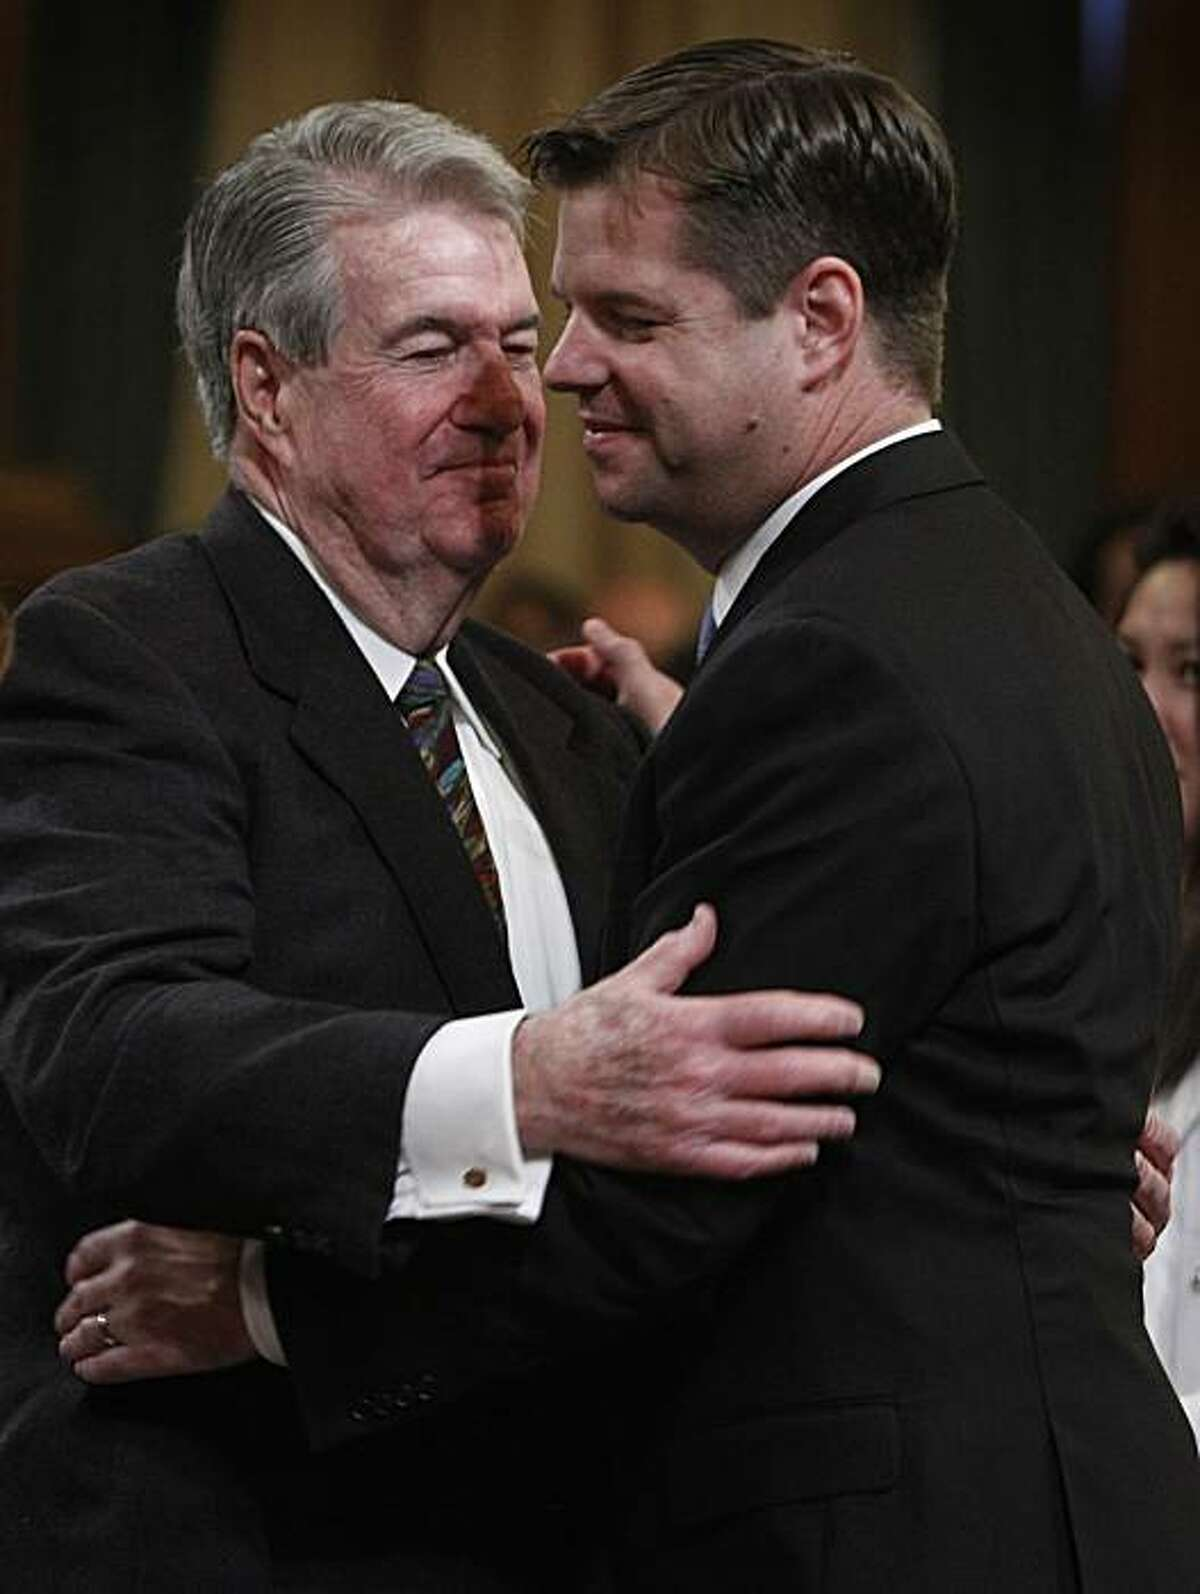 Mark Farrell (right) hugs his dad, John, after being sworn in as one of four new members on the Board of Supervisors at City Hall in San Francisco on Saturday.